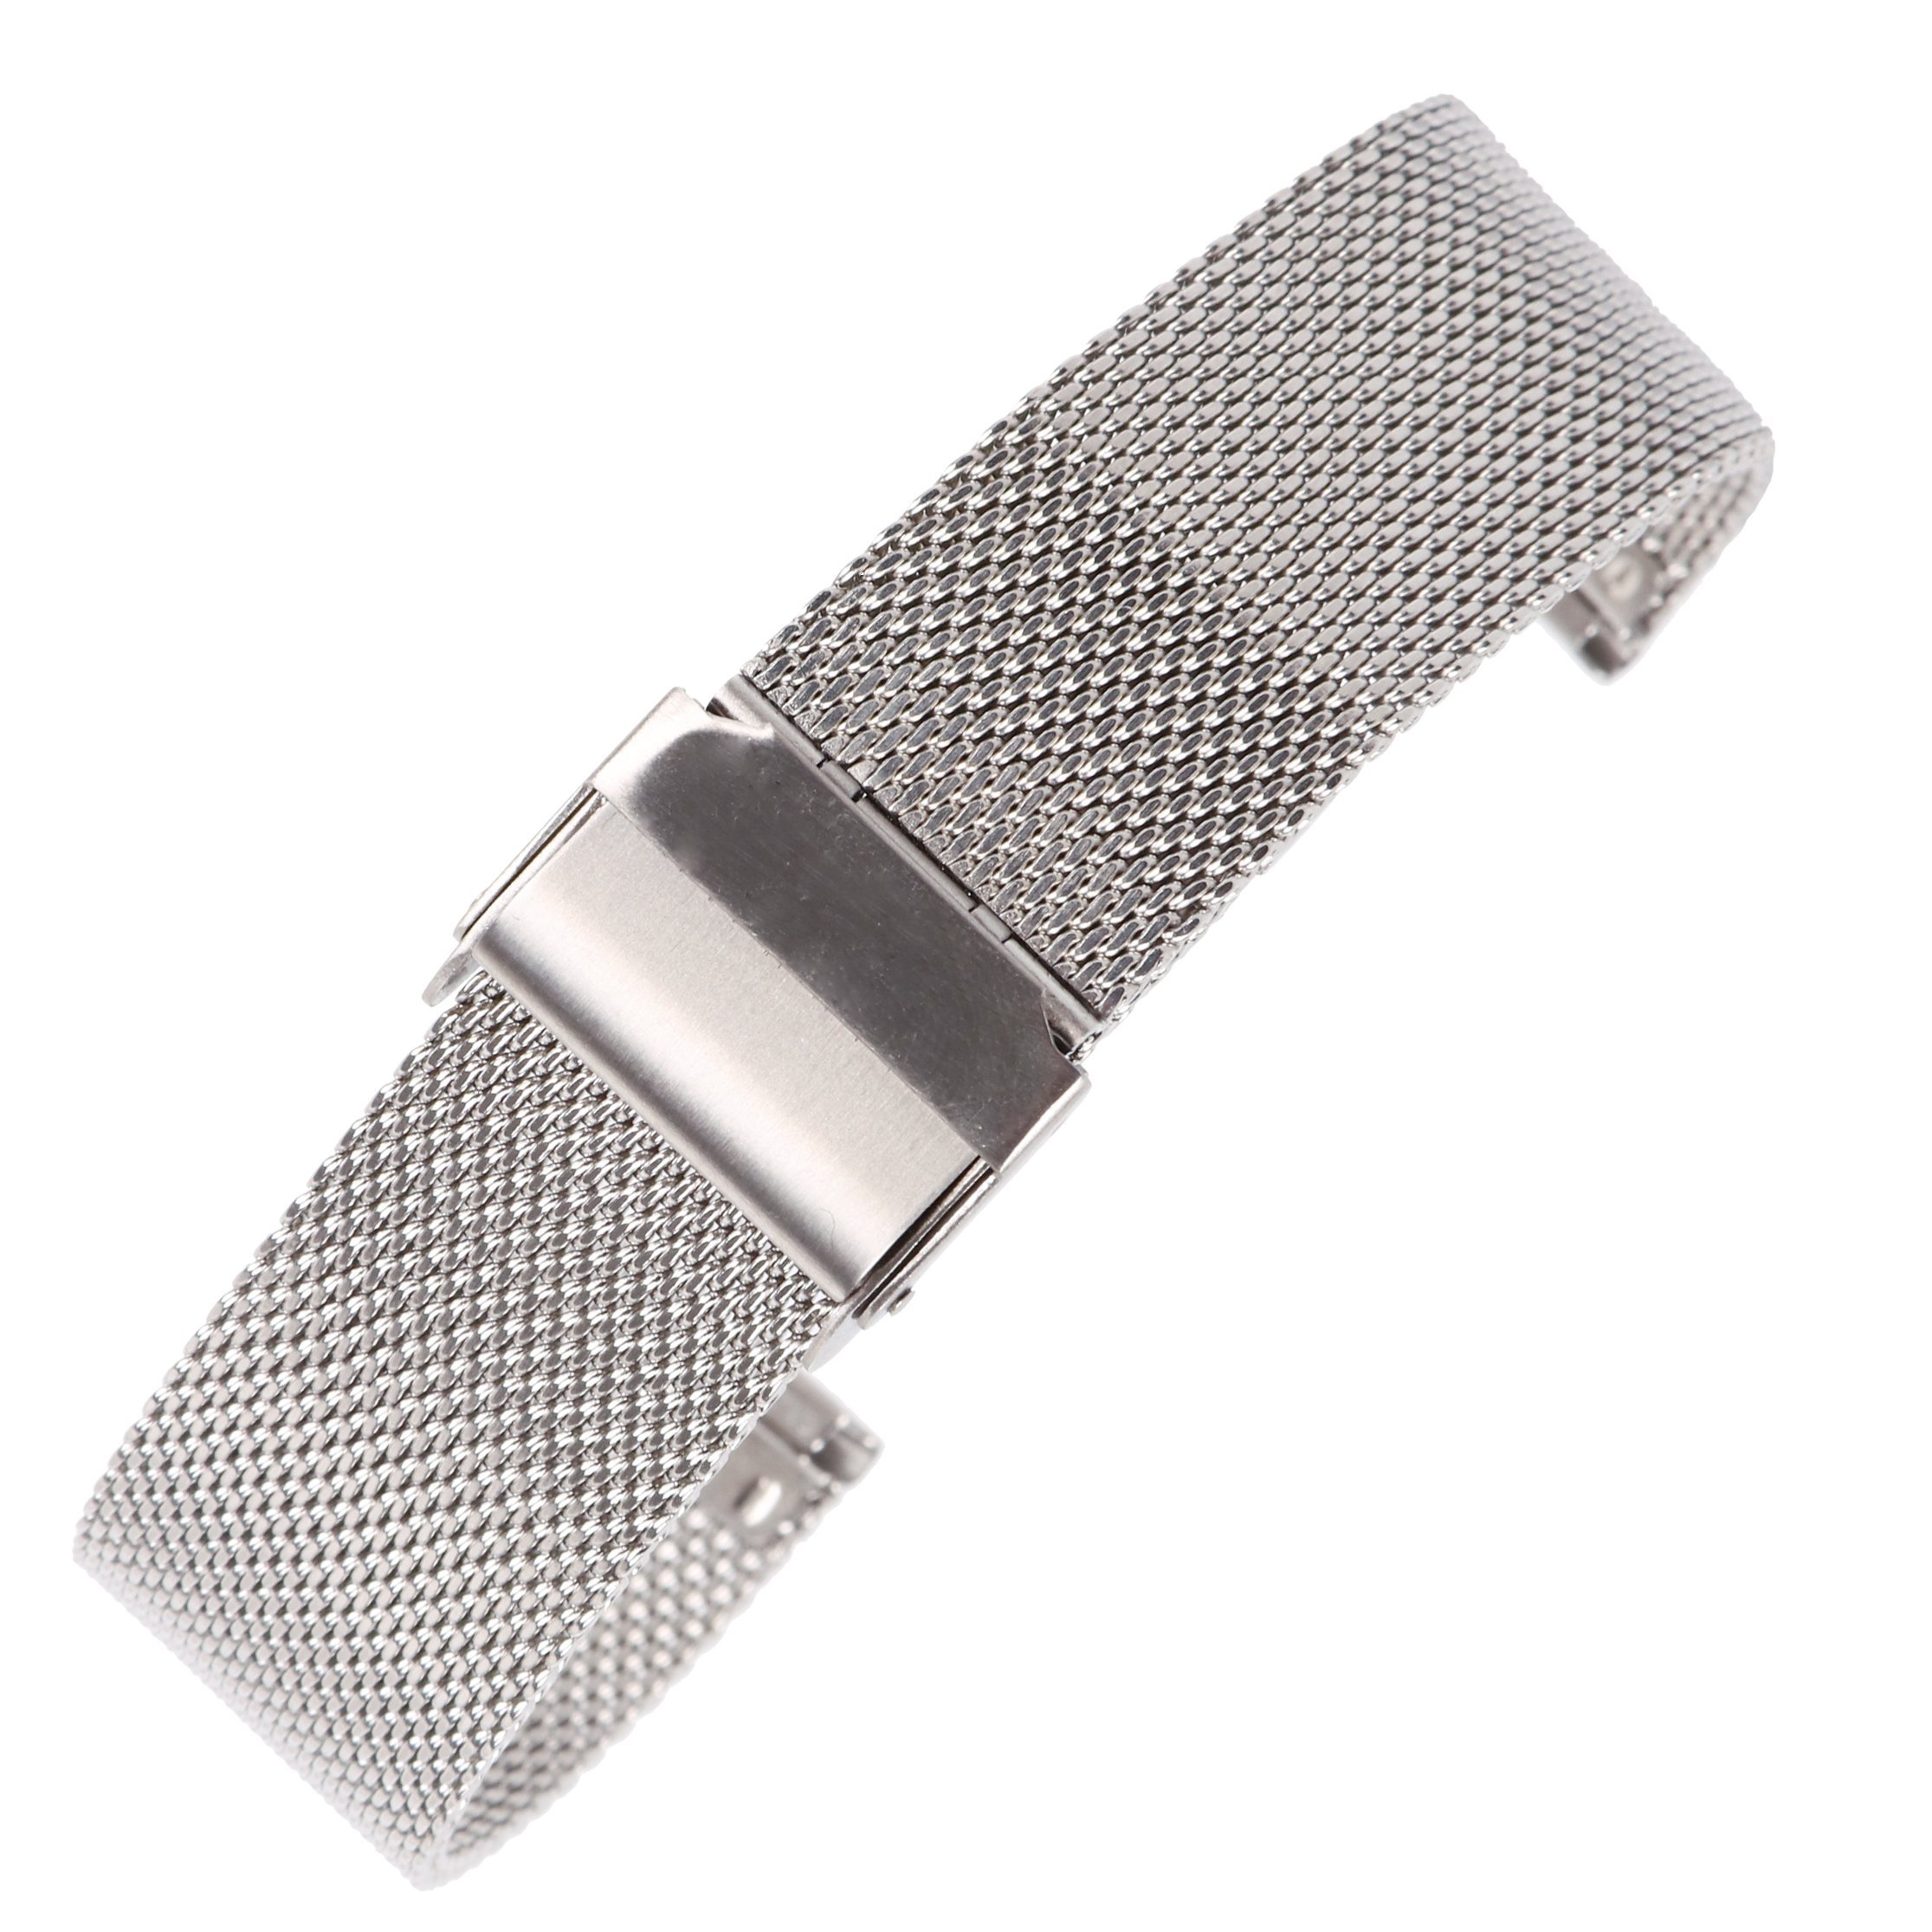 14mm Classic Silver Mesh Watch Band Milanese Loop Stainless Steel Watch Bracelet with Safety Hook Buckle